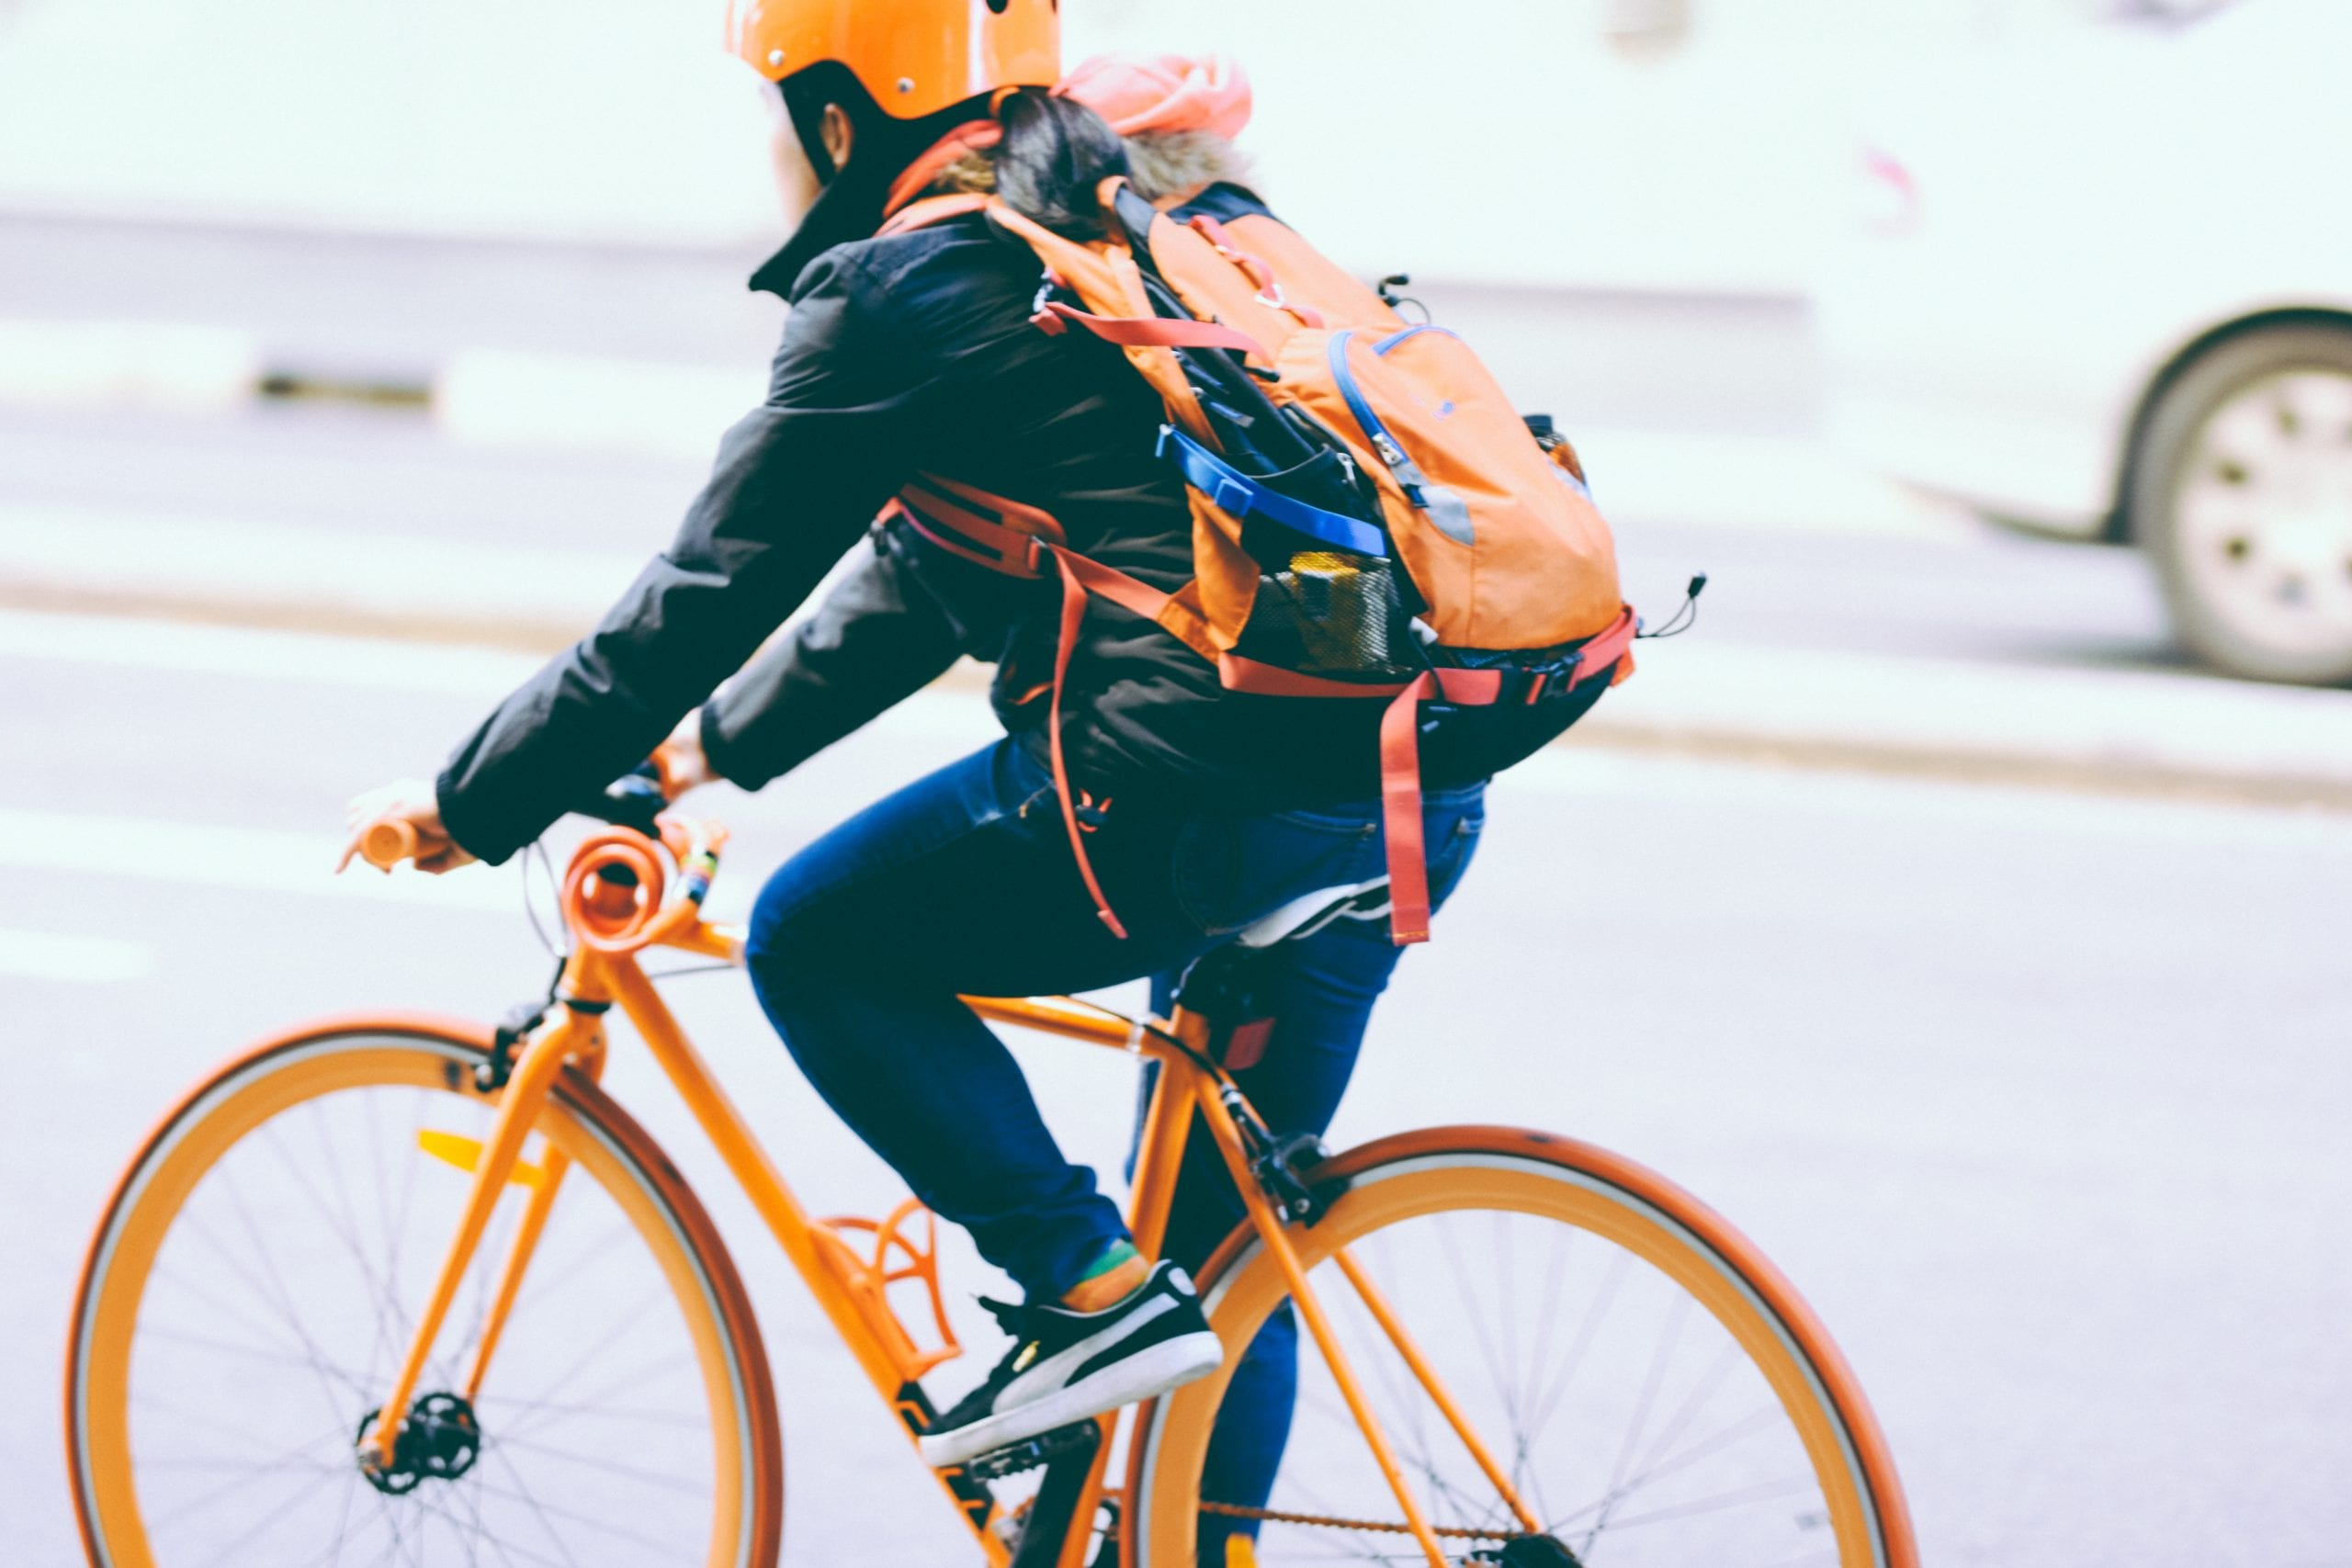 How does air pollution and smog affect you while cycling?